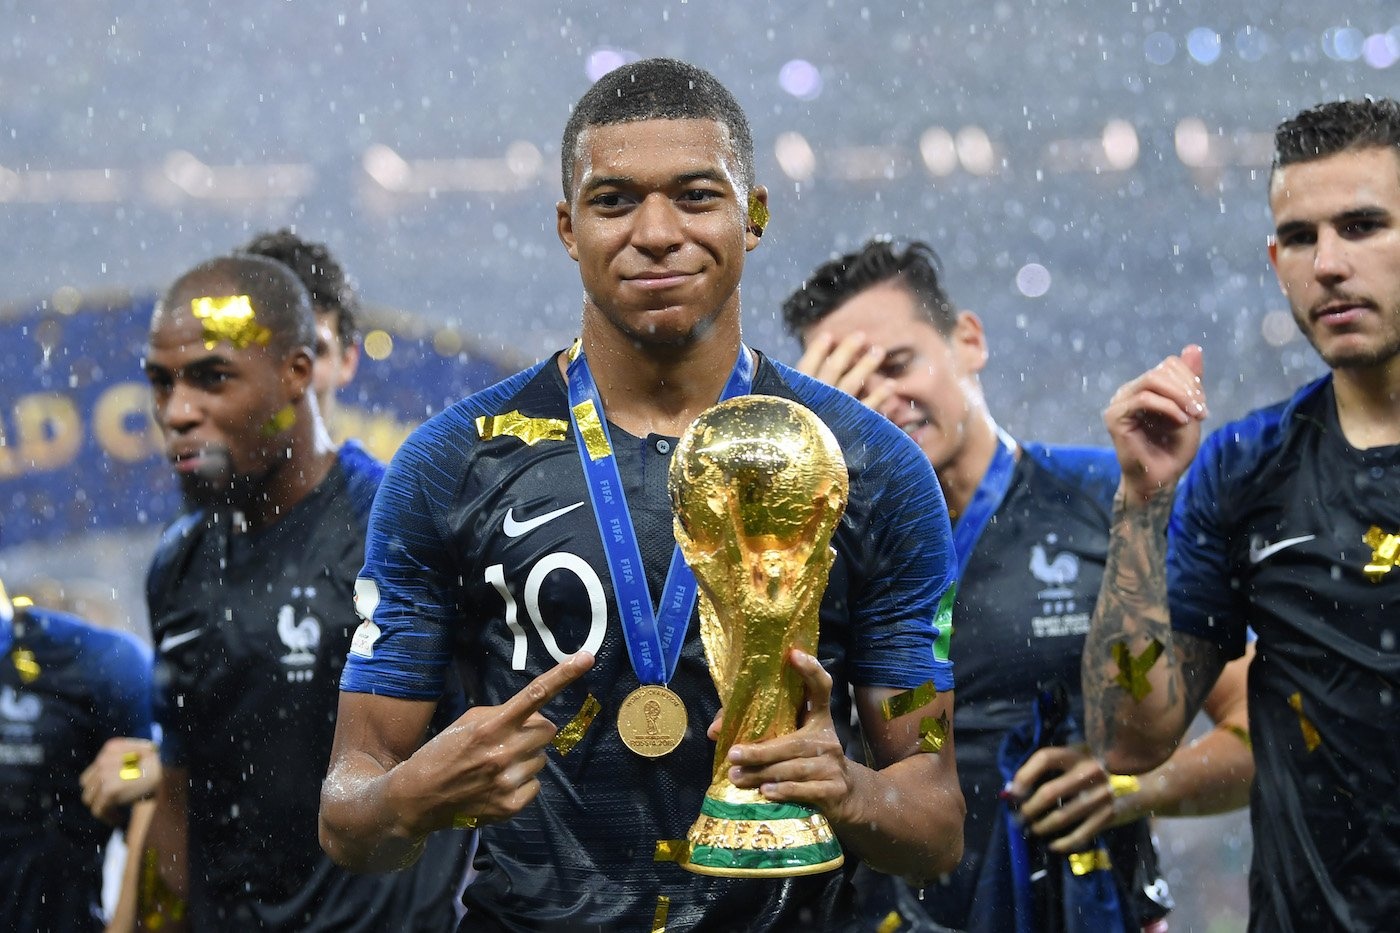 Mbappe, France, FIFA world cup 2018, Croatia, Ronaldo, Paris Saint-Germain, Footballing sensation, Pele, Brazil, Argentina, Emmanuel Macaron, French president, India,